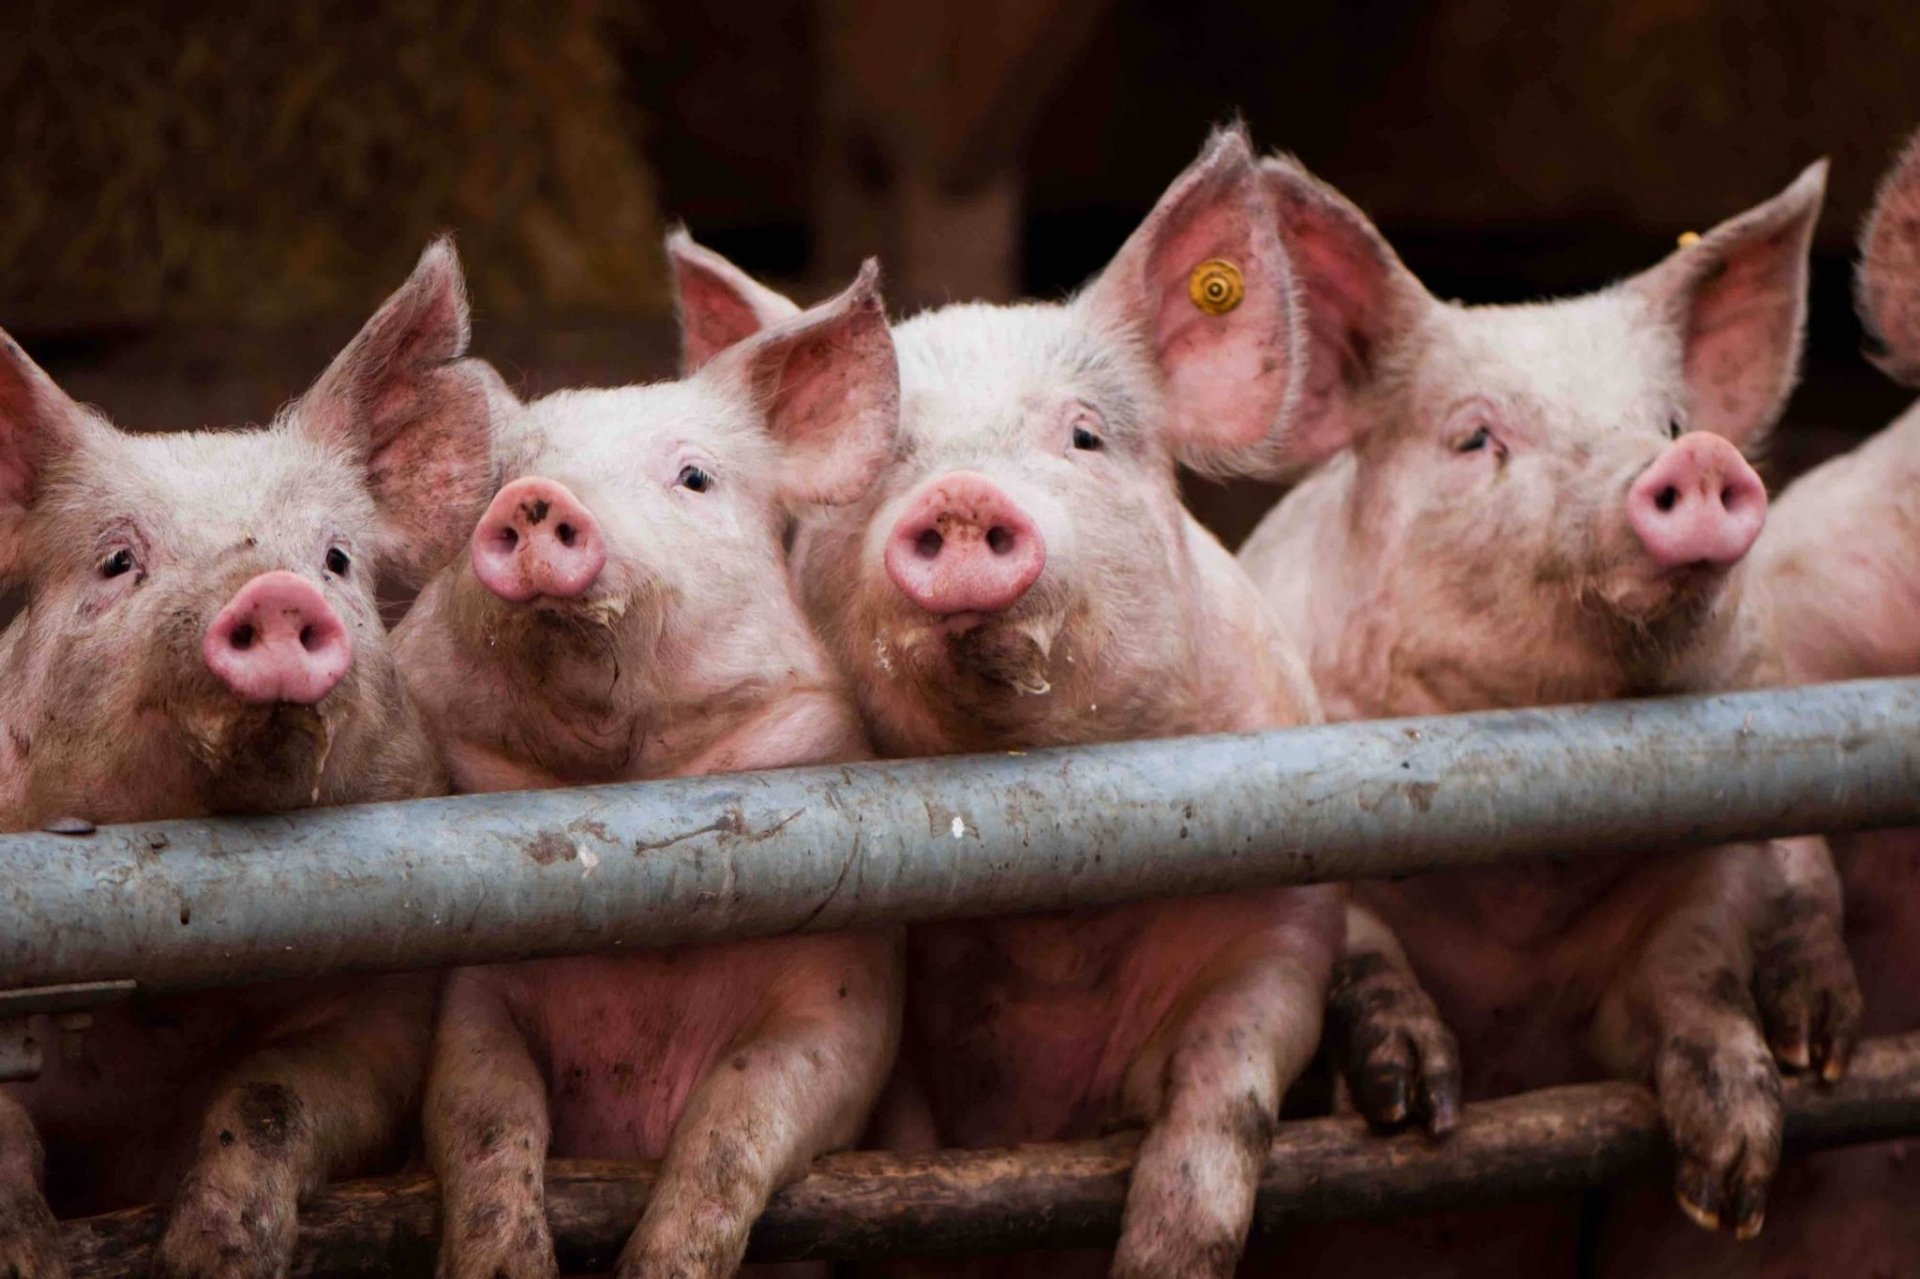 Live hog price today 10/14: Maintain a downward trend of 2